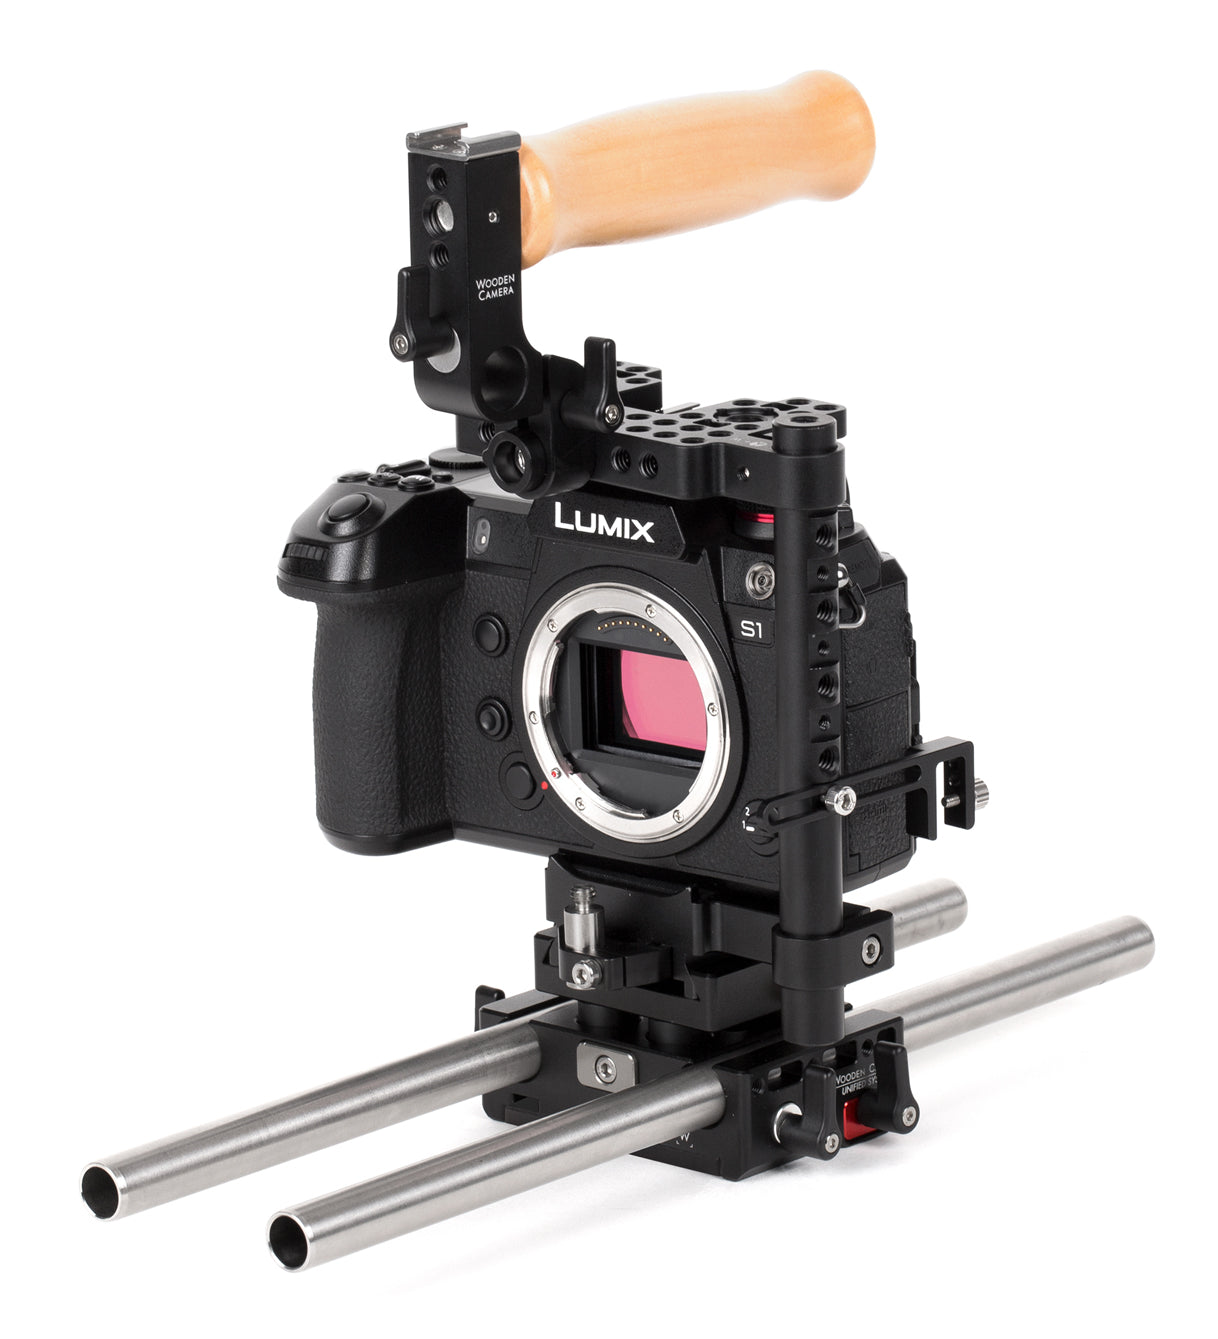 basic panasonic camera support package & accessories from wooden camera